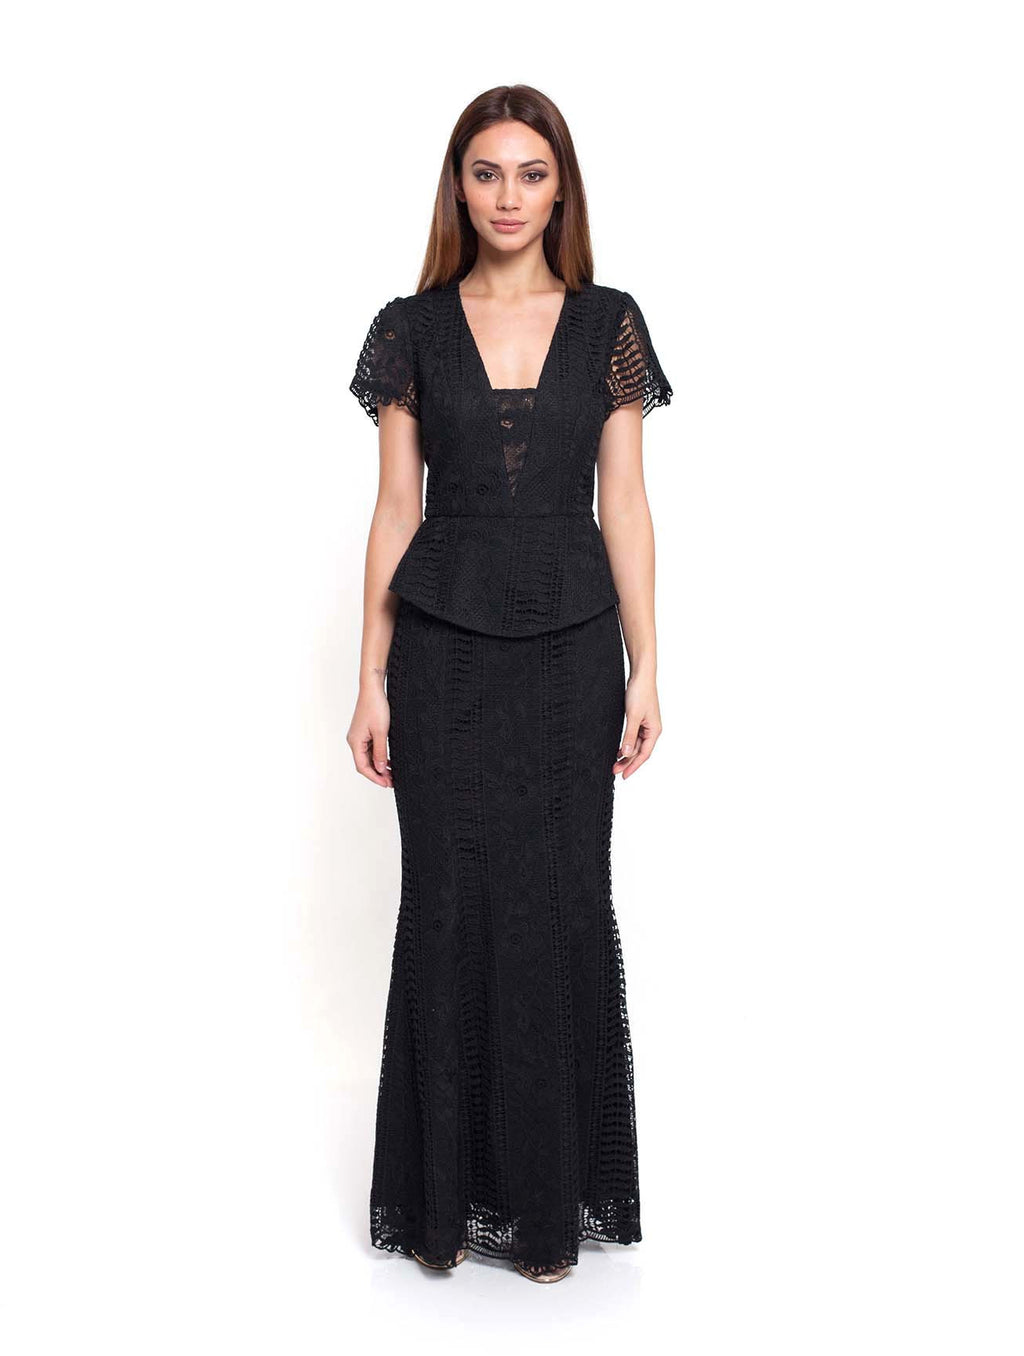 Ellie Lace Maxi